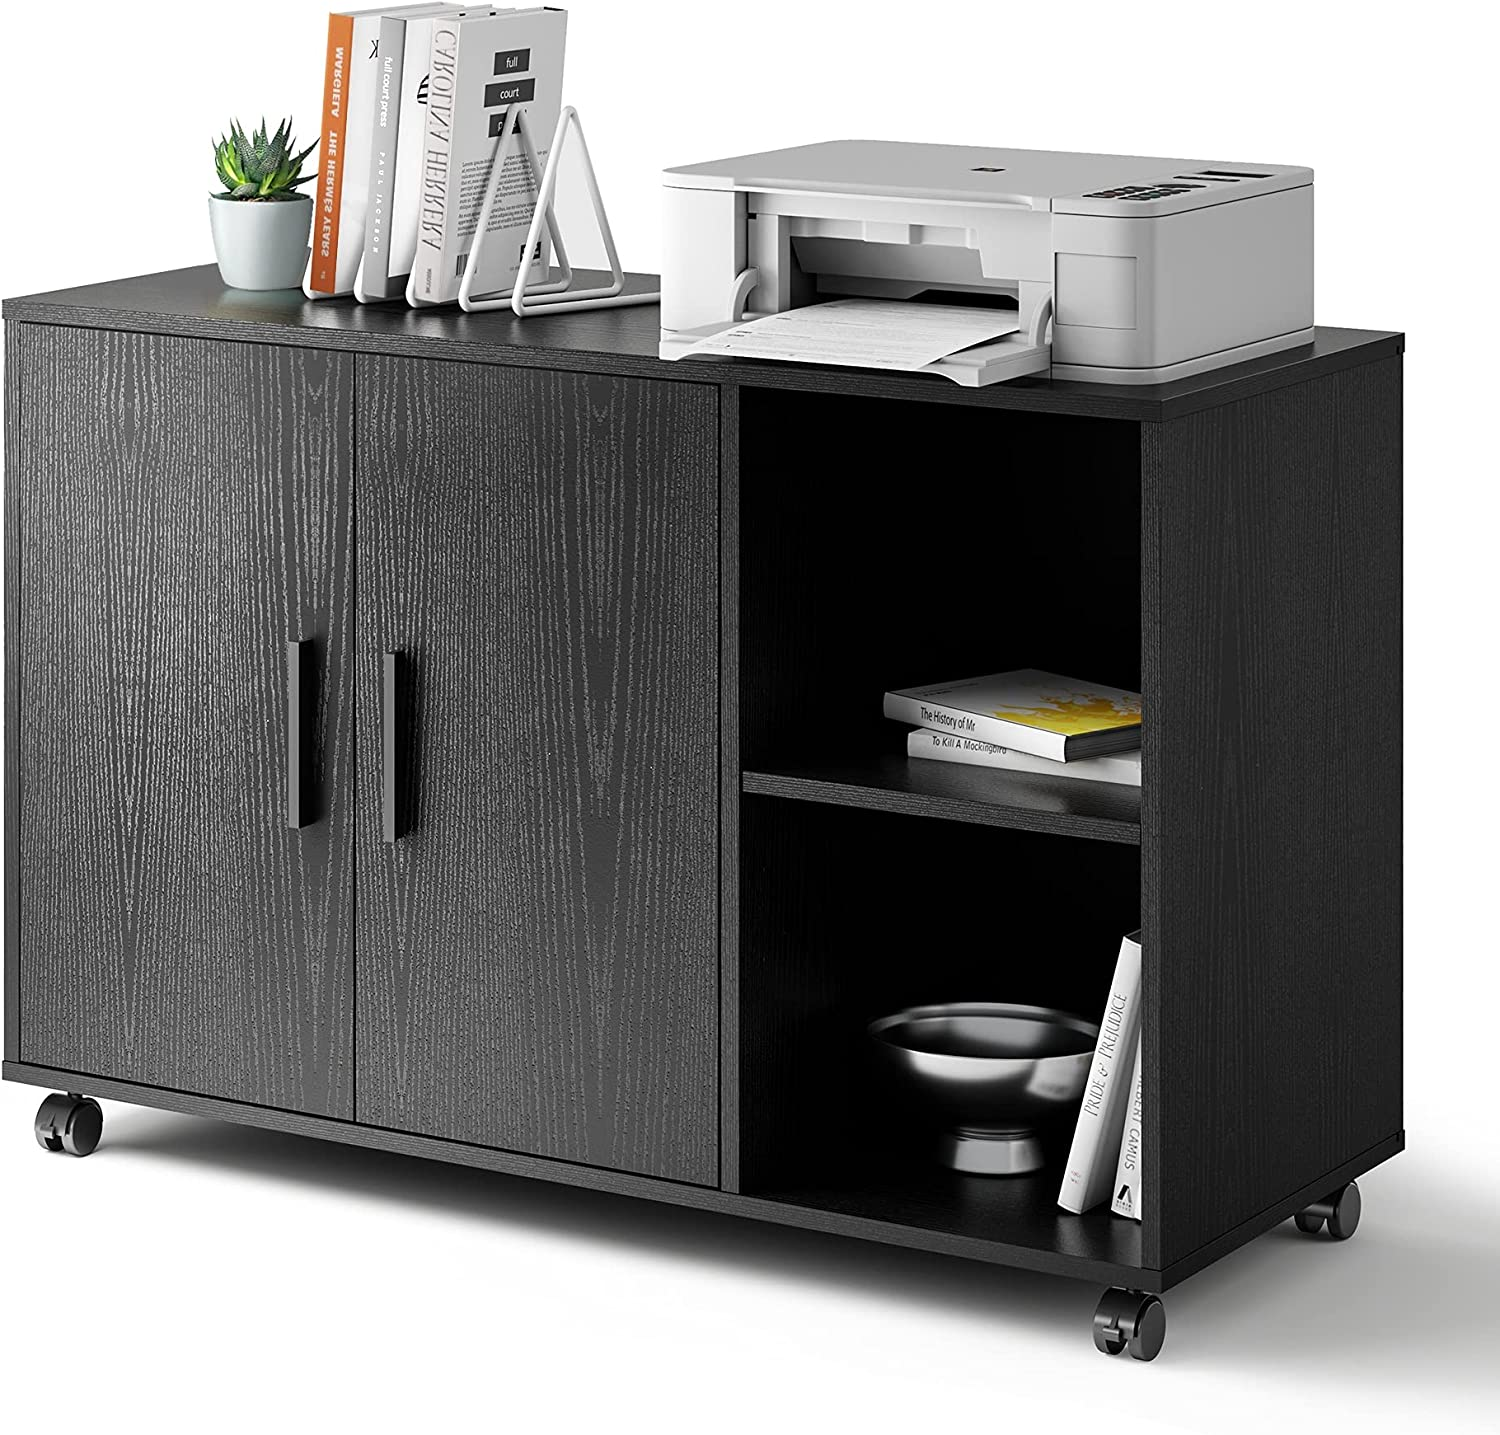 DEVAISE Rolling File Cabinet, Wood Storage Cabinet with Dual Doors, Large Printer Stand on Lockable Wheels for Home Office, Black